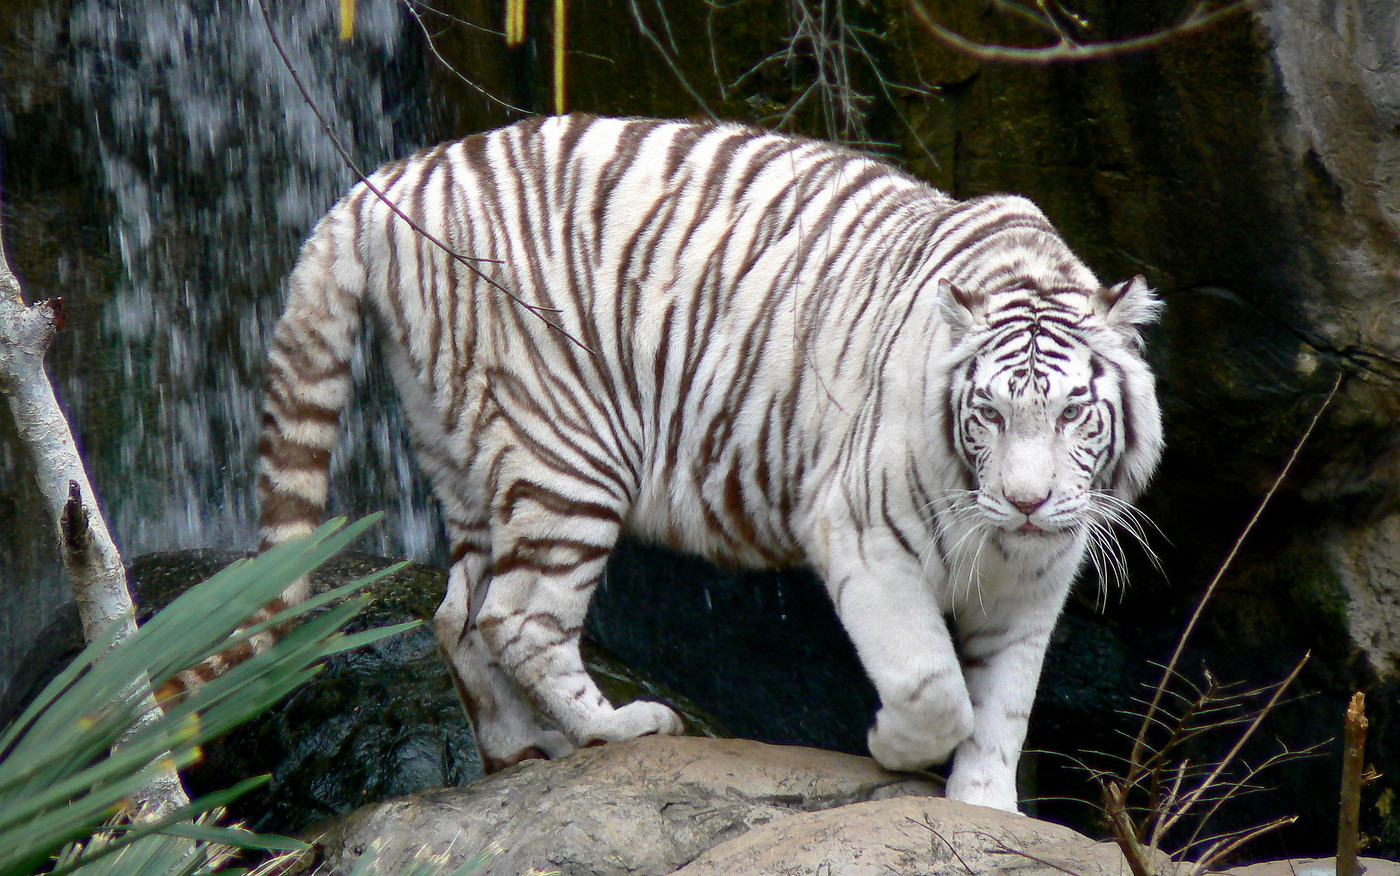 wallpaper hd white tiger - photo #26